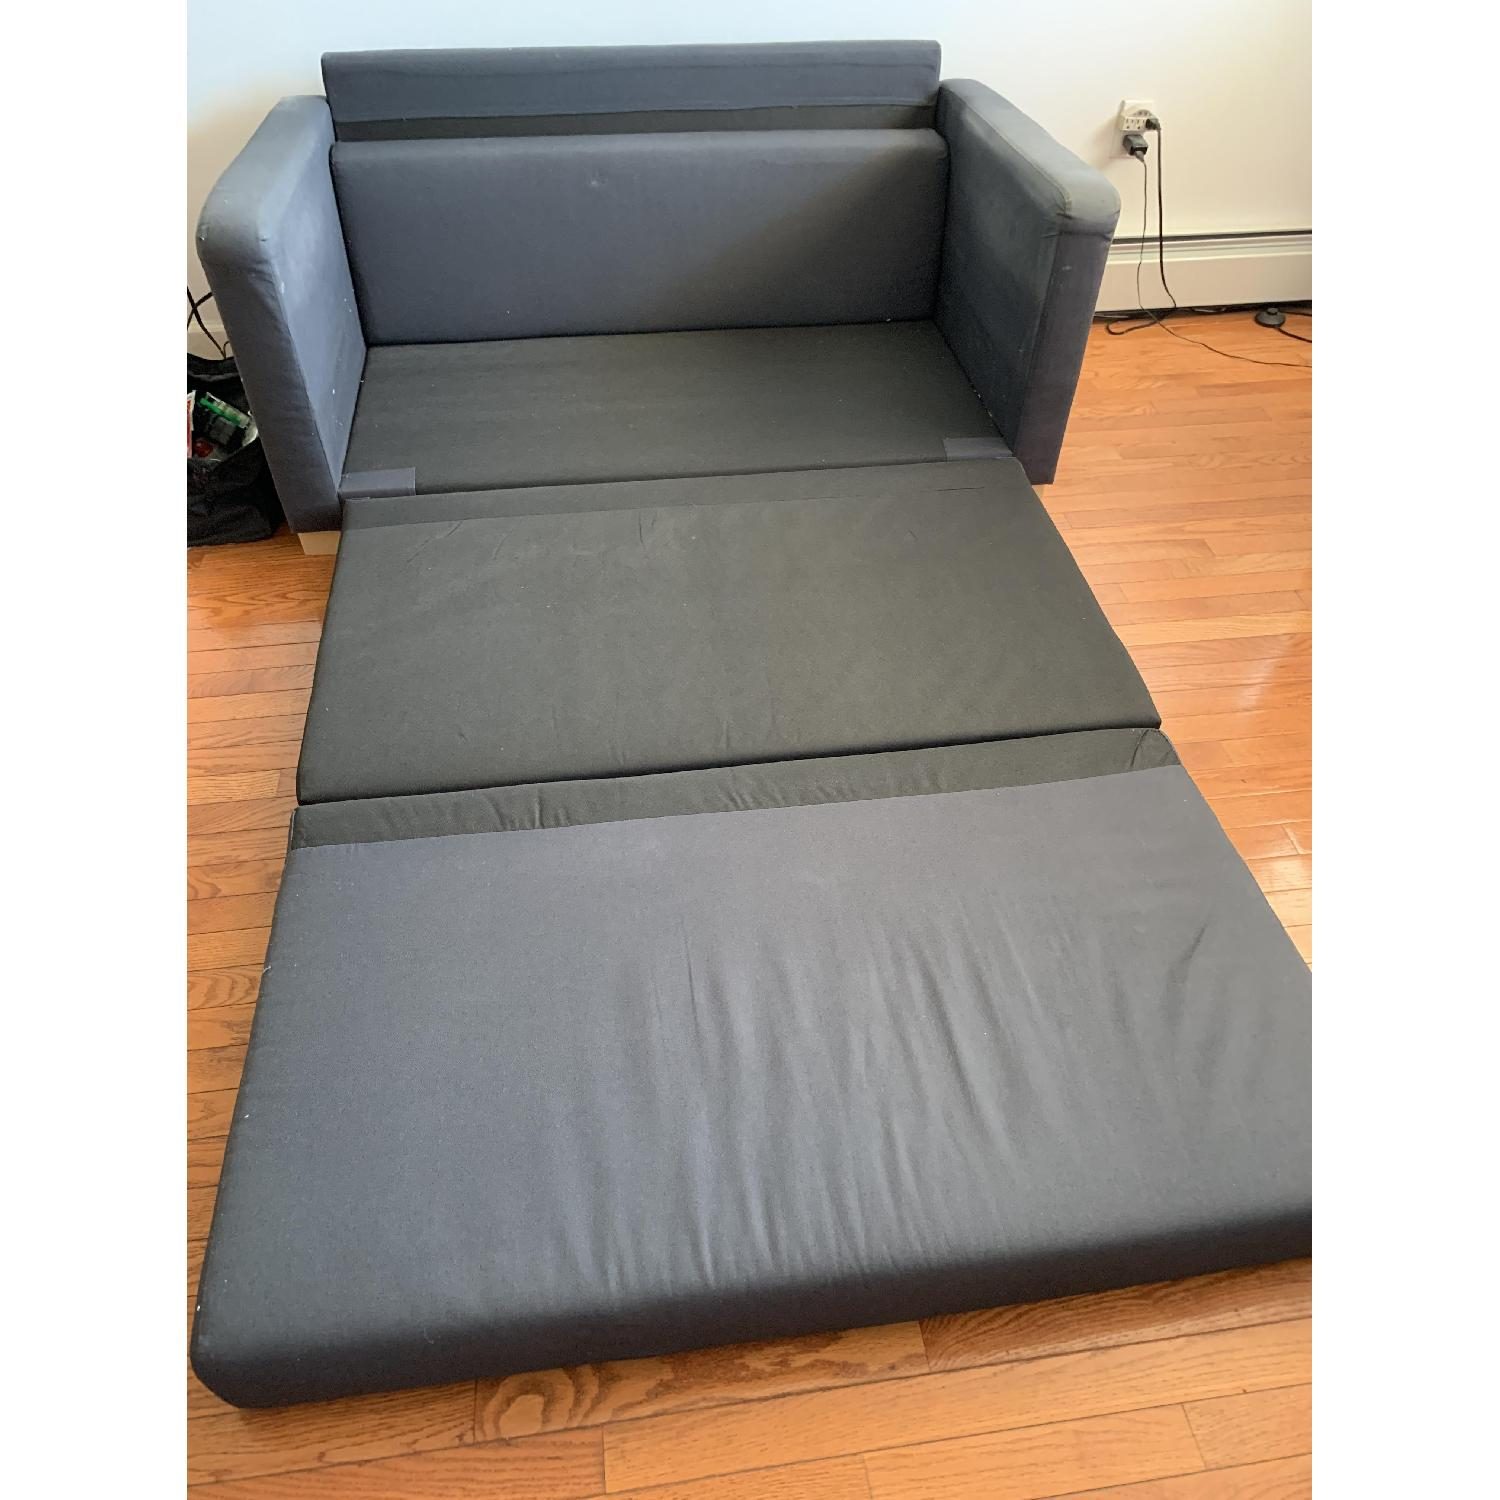 Awesome Ikea Solsta Sleeper Sofa Aptdeco Caraccident5 Cool Chair Designs And Ideas Caraccident5Info